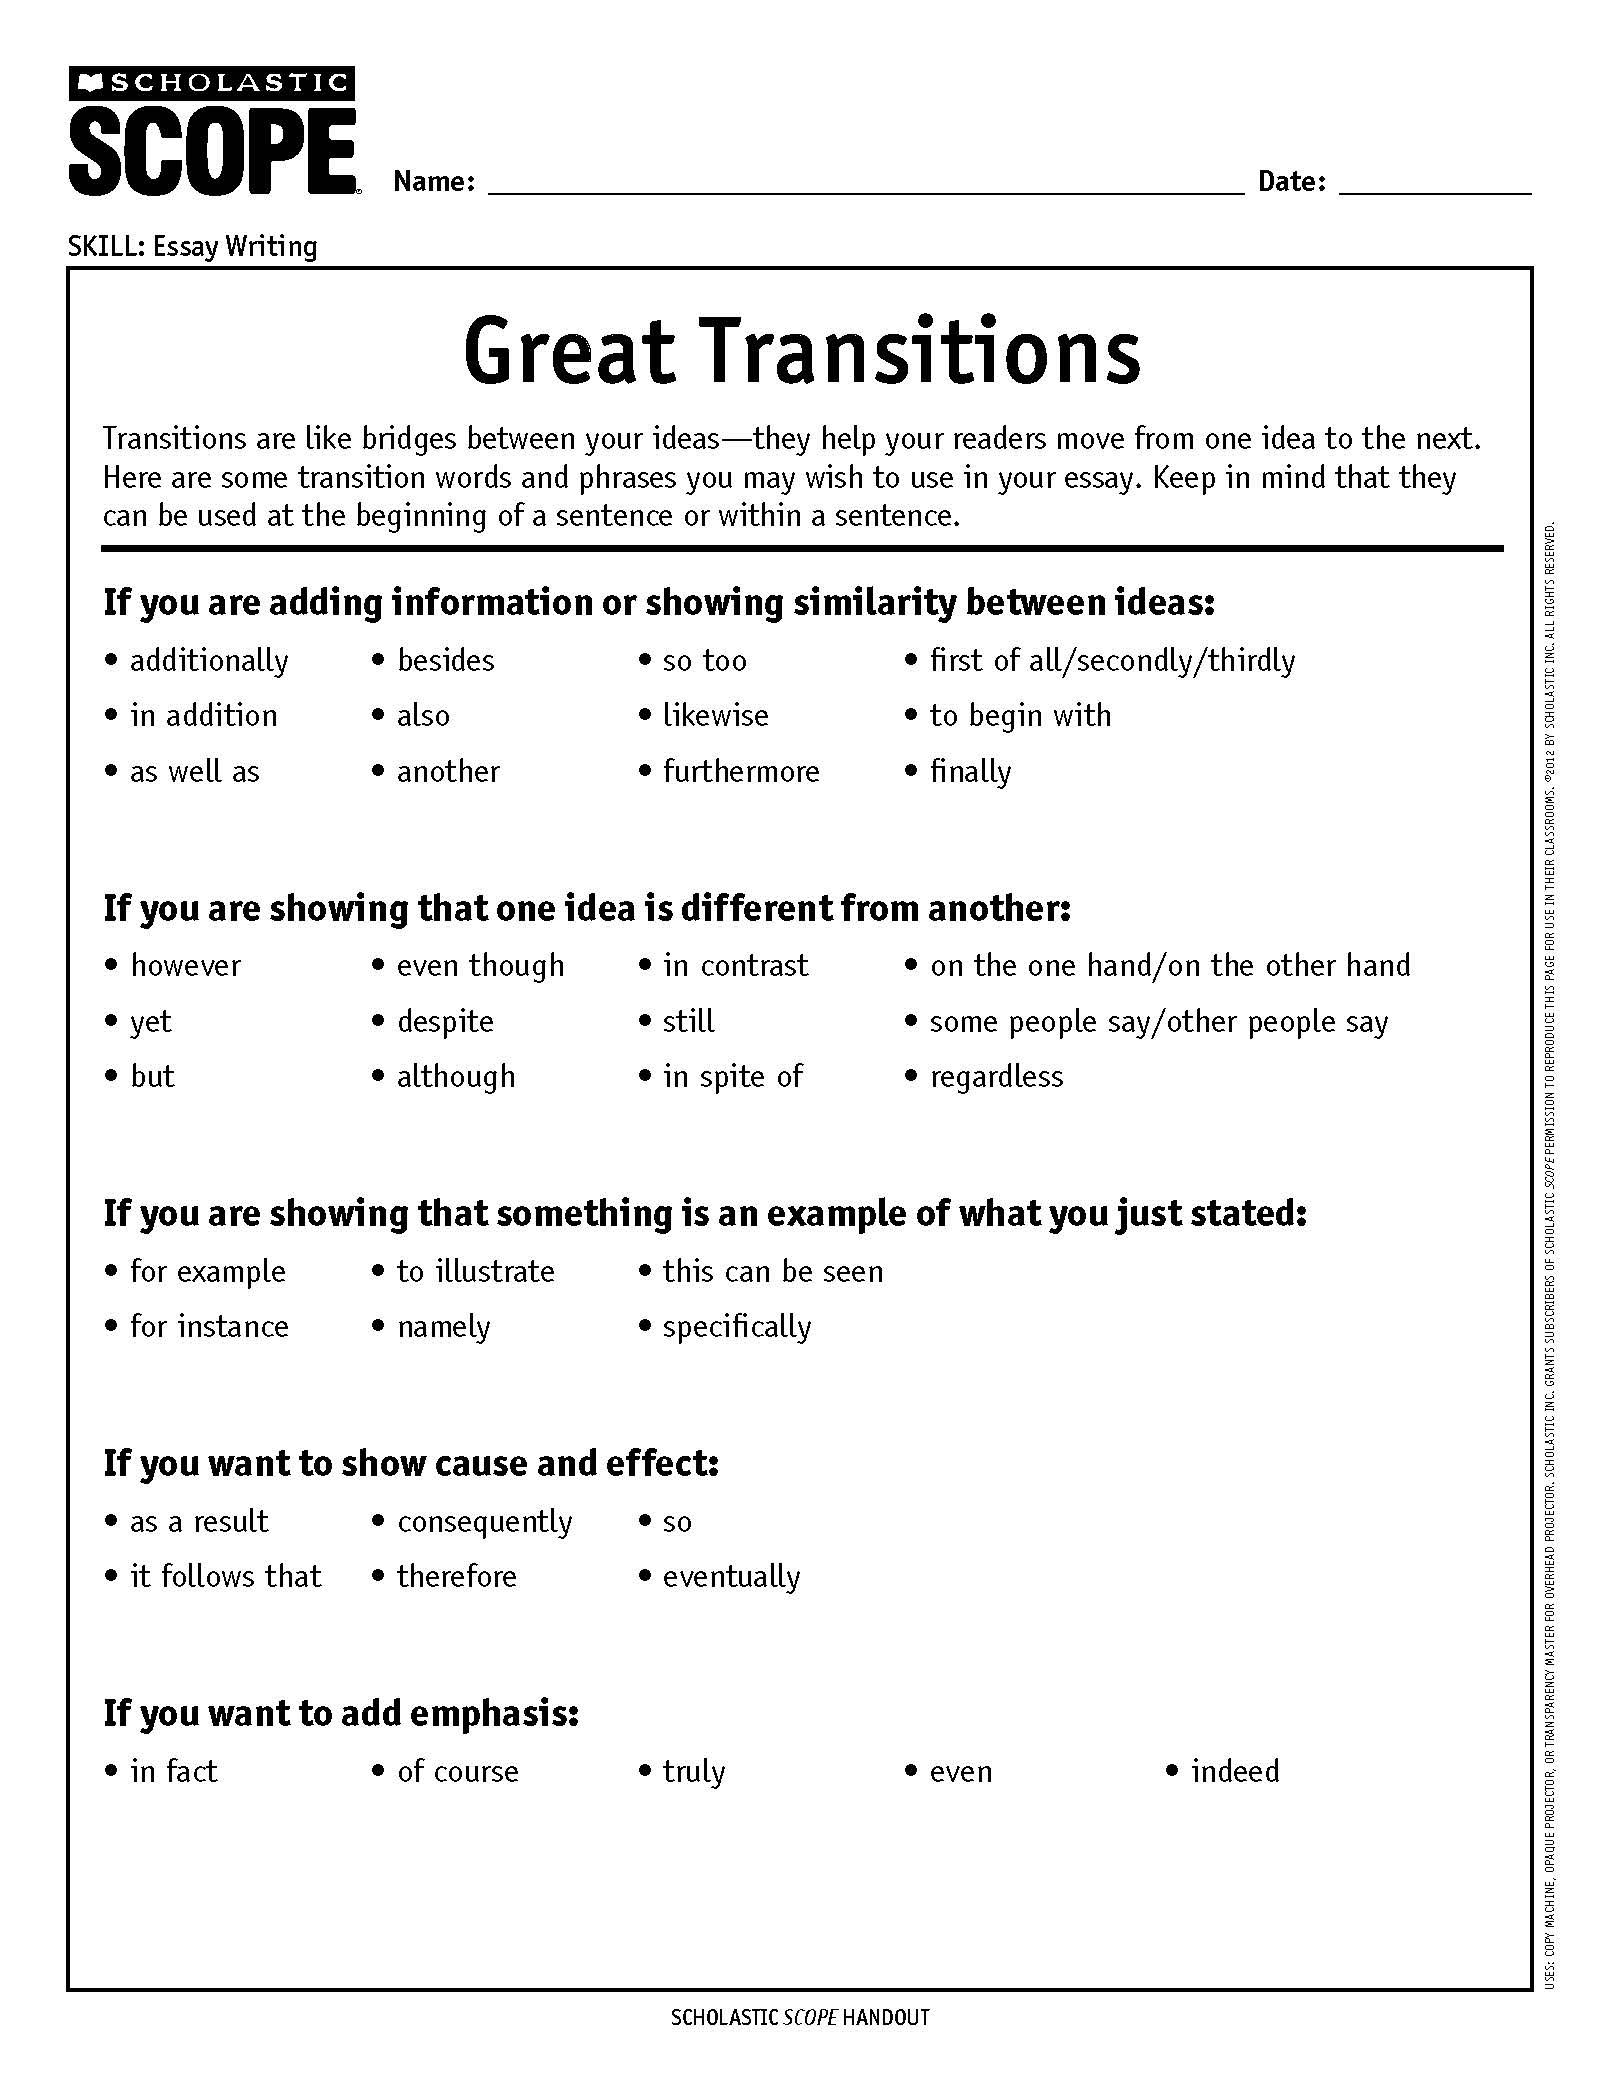 Teach Child How To Read Free Printable Worksheets With